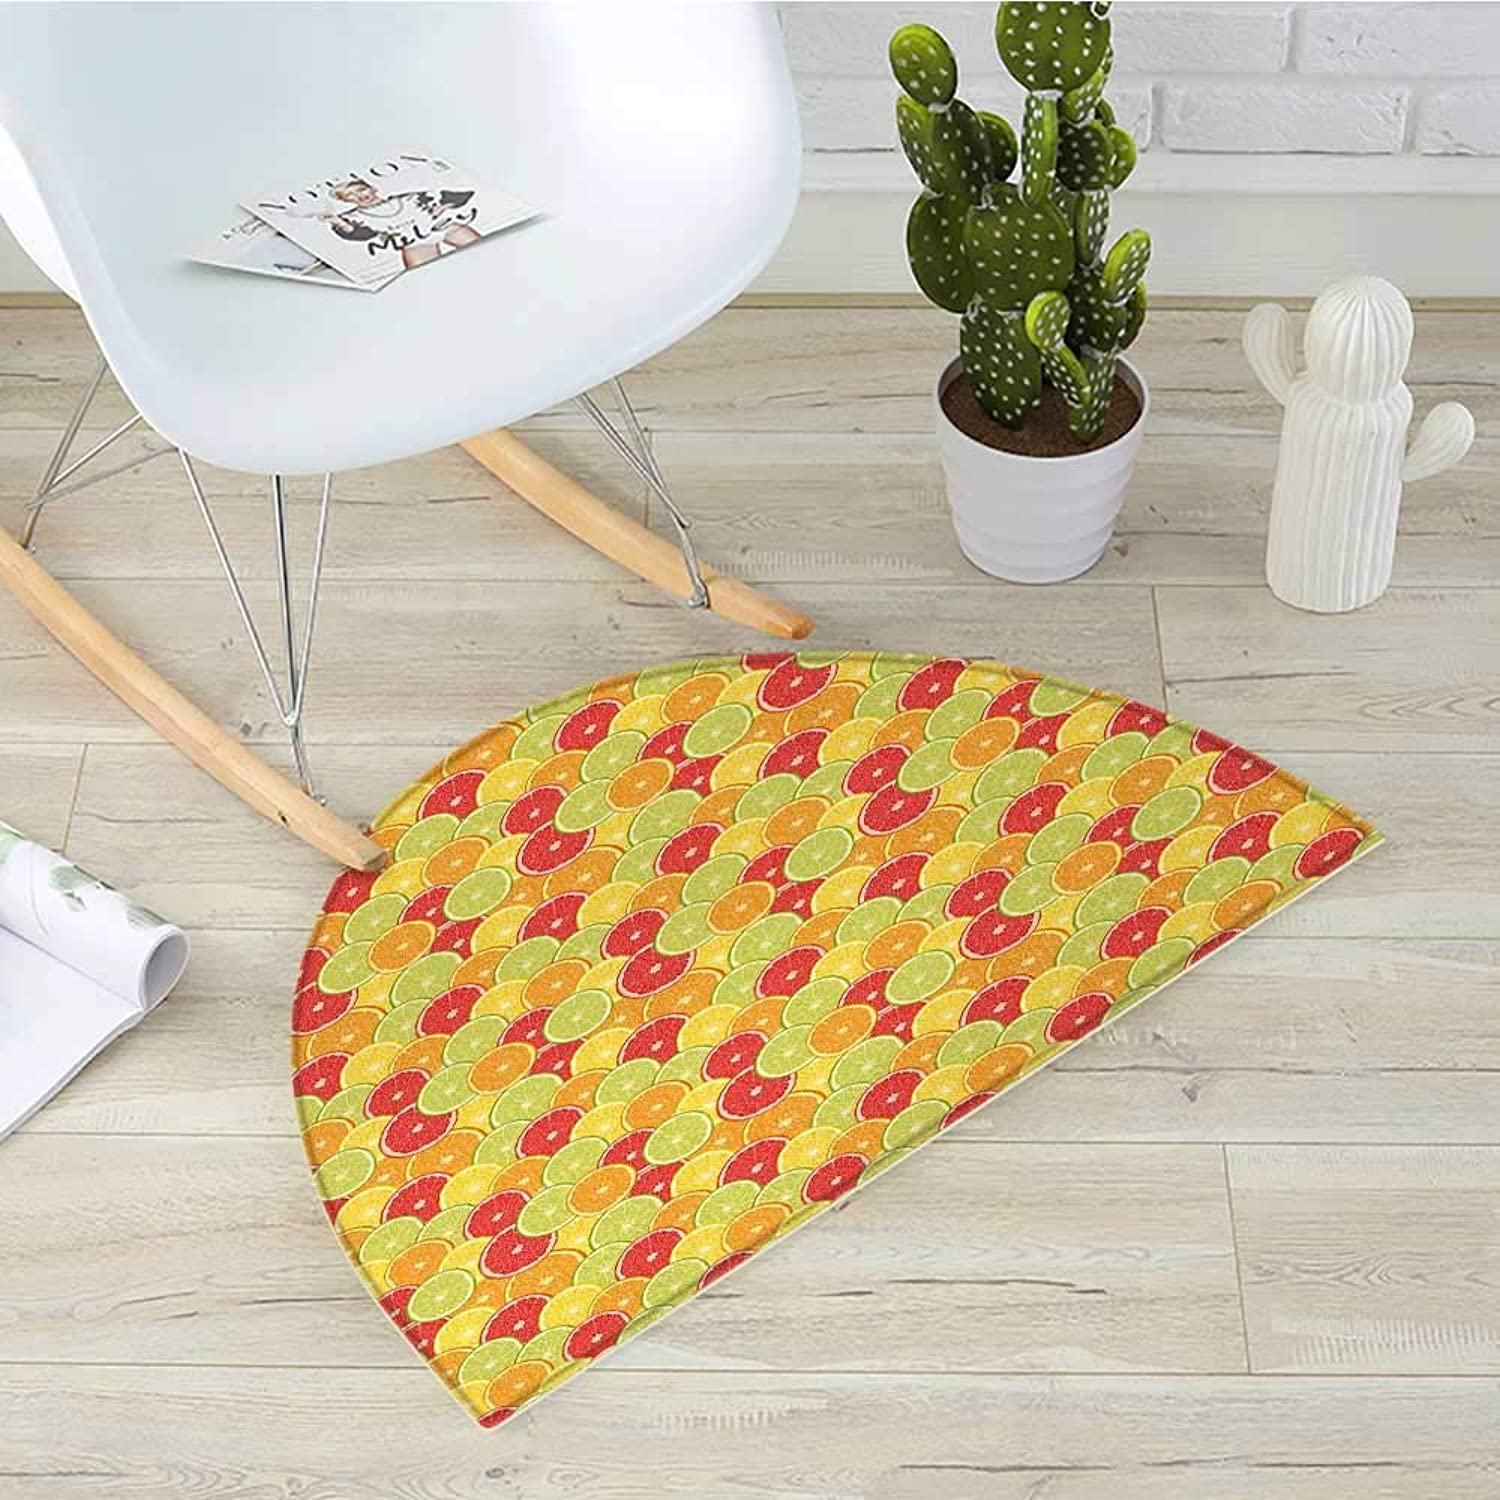 colorful Semicircular CushionFresh Ripe Citrus Fruits orange Grapefruit and Lemon Repeating Circular Pattern Entry Door Mat H 35.4  xD 53.1  Multicolor